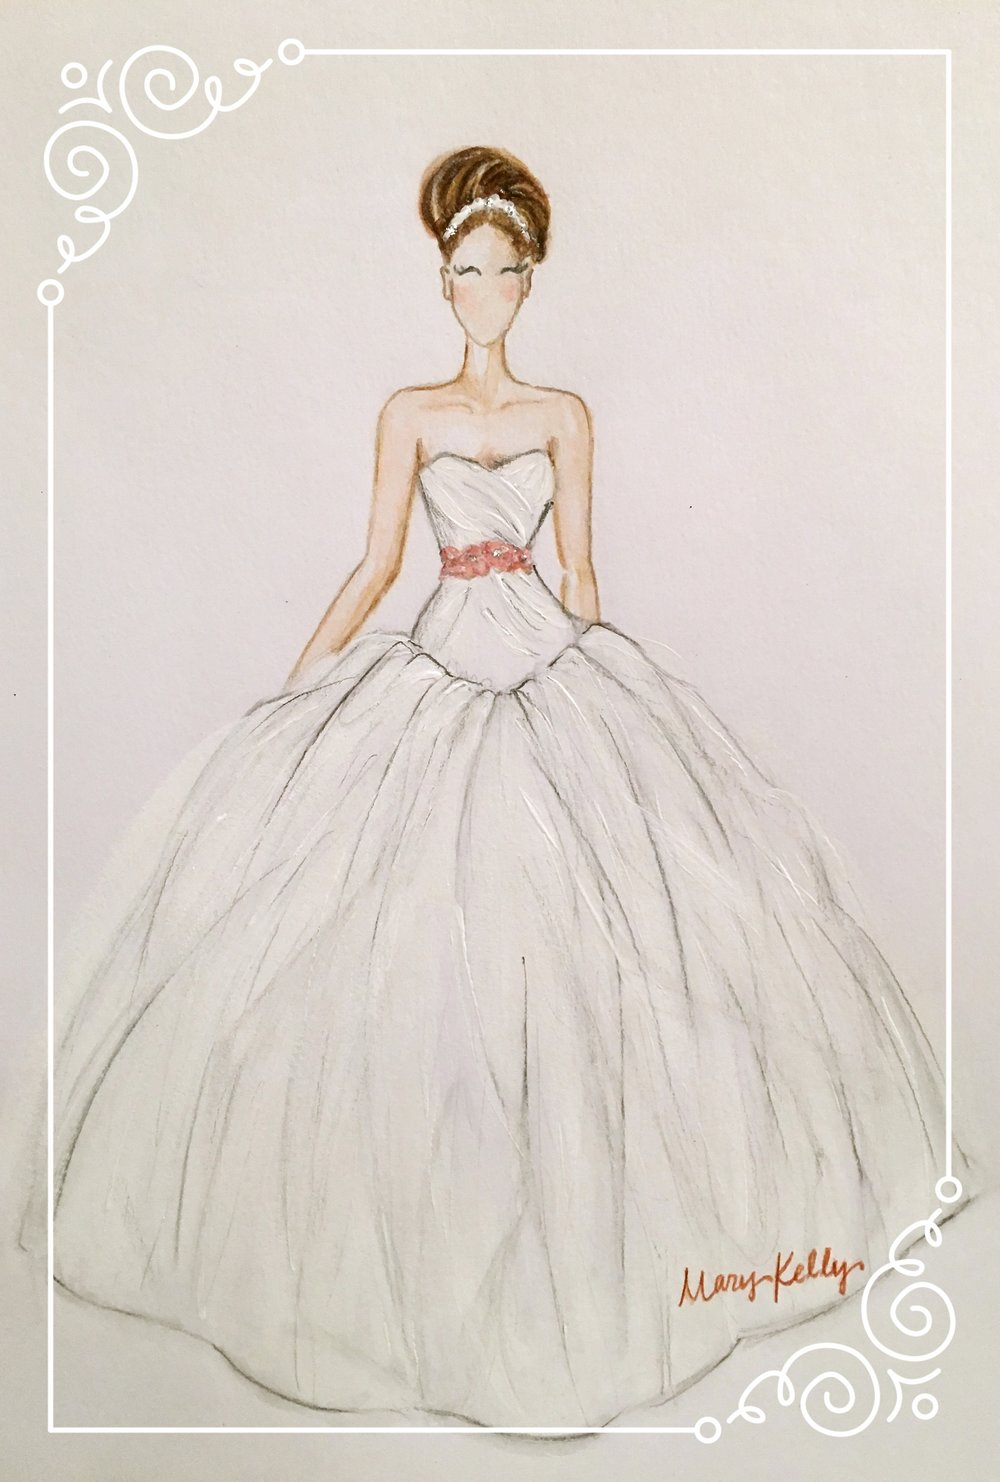 vera wang gown, mary kelly designs ©2017